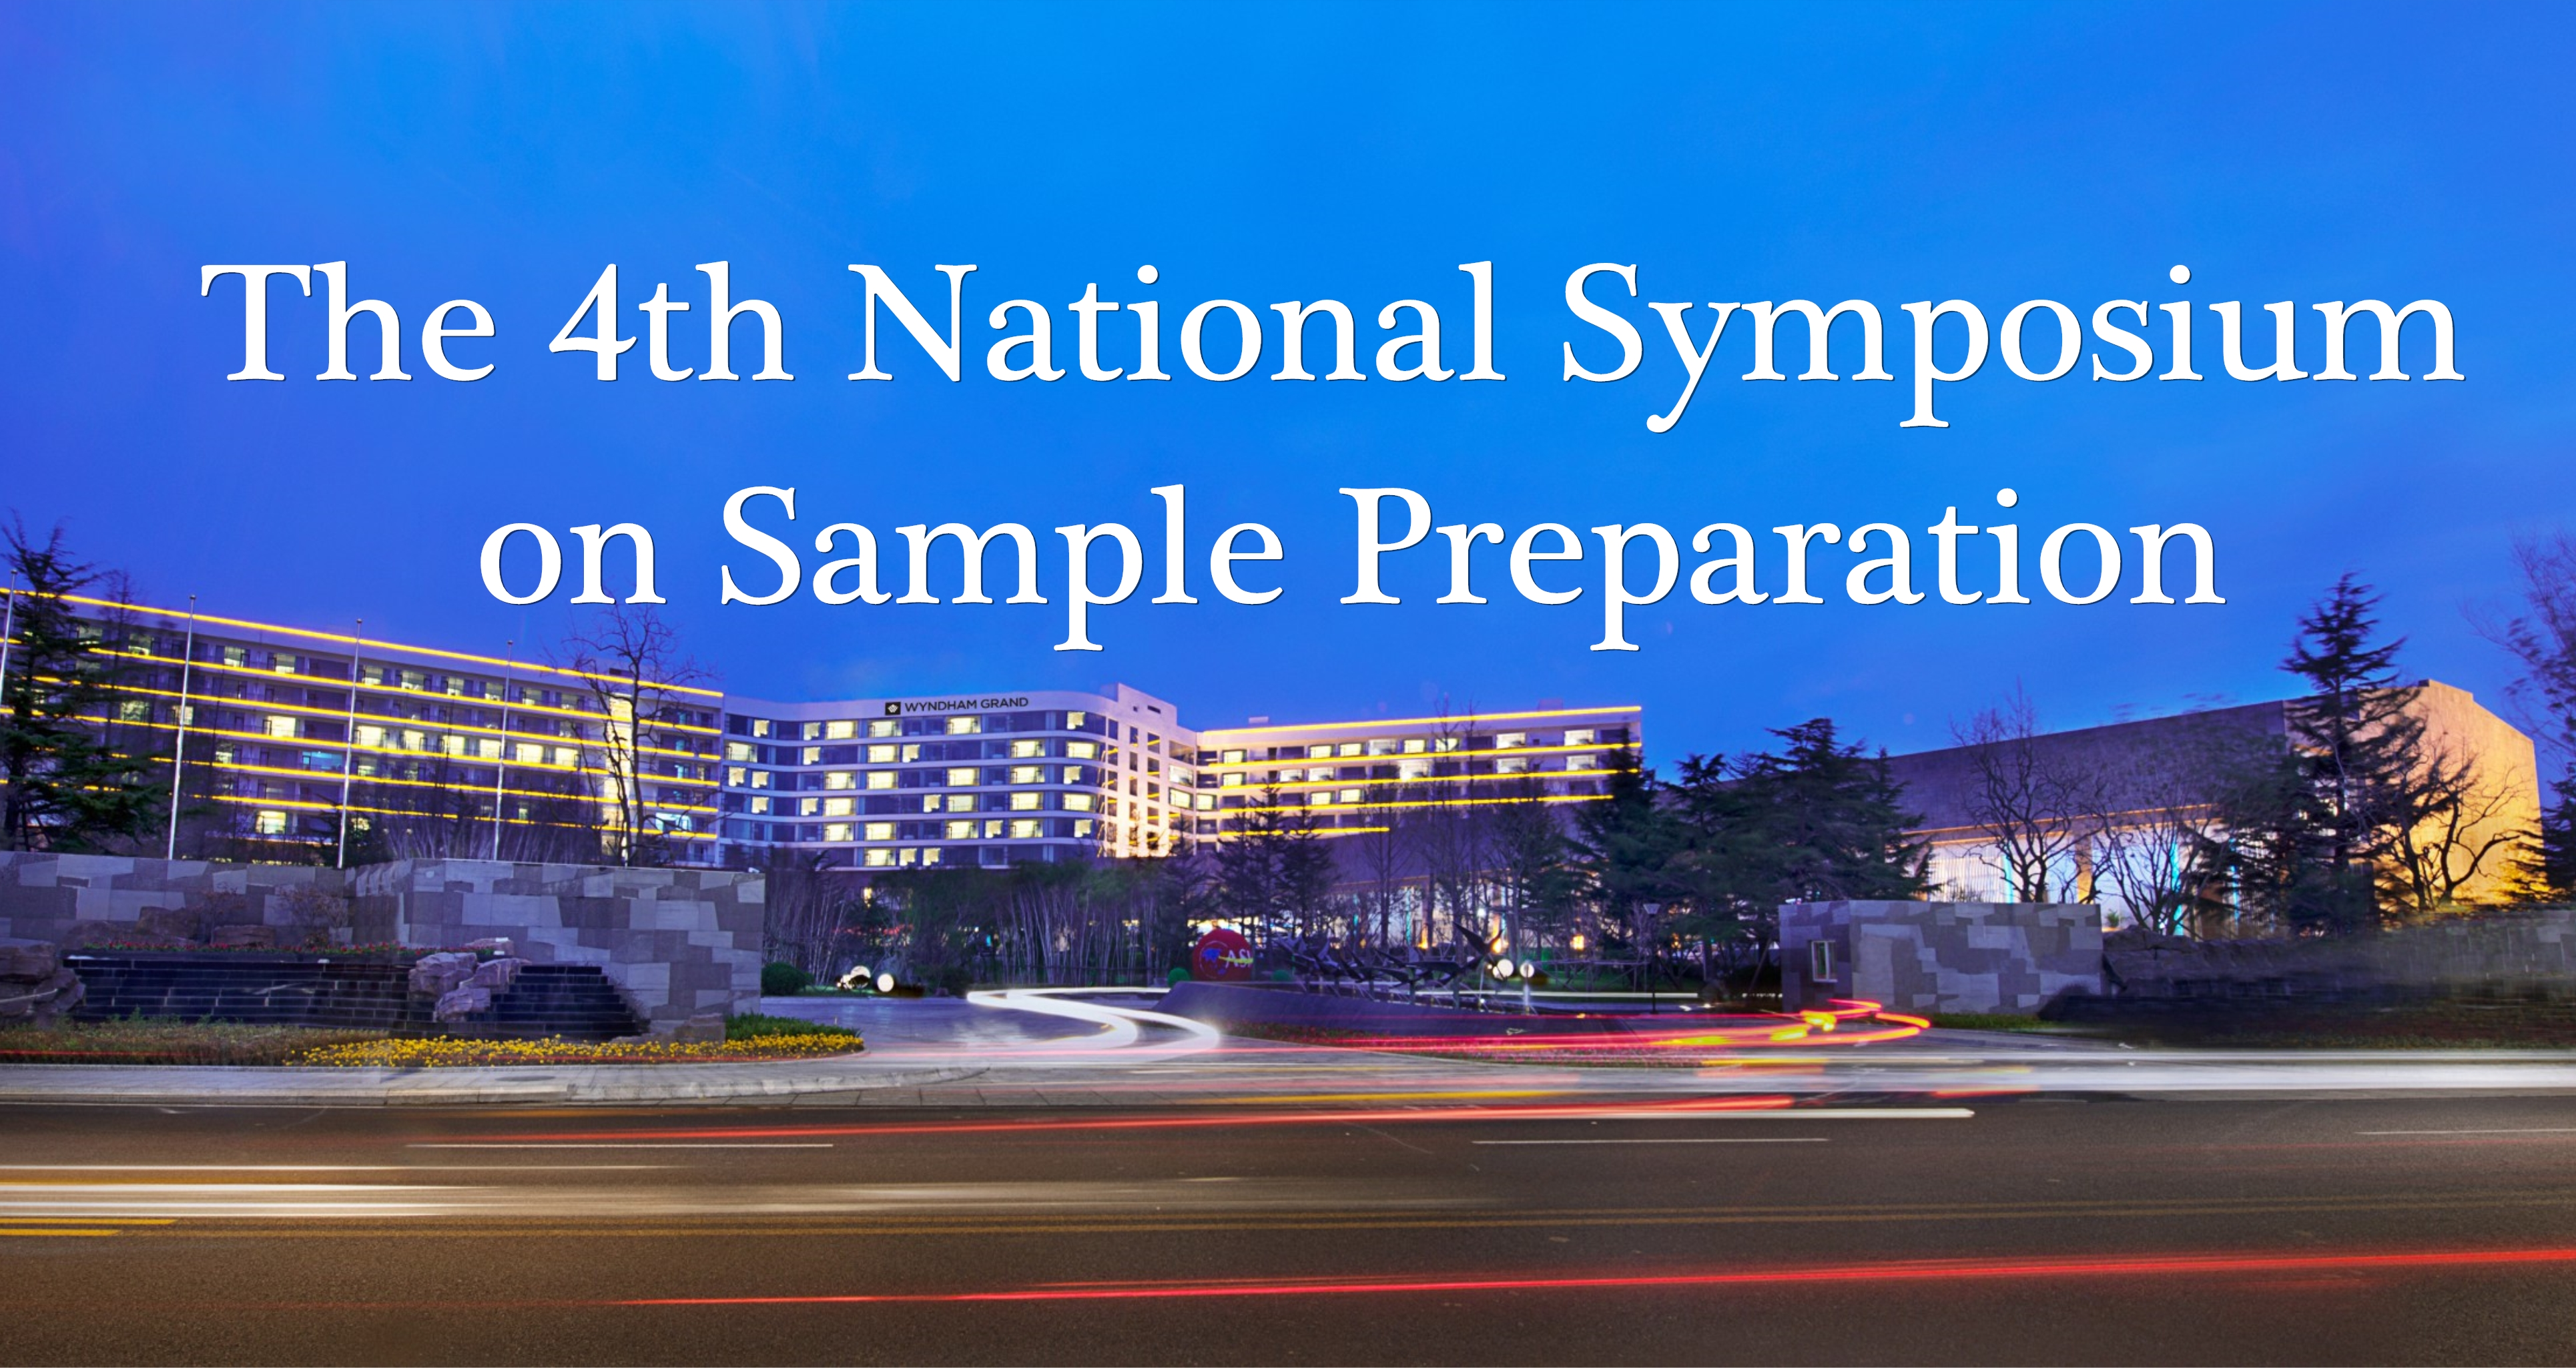 The 4th National Symposium on Sample Preparation